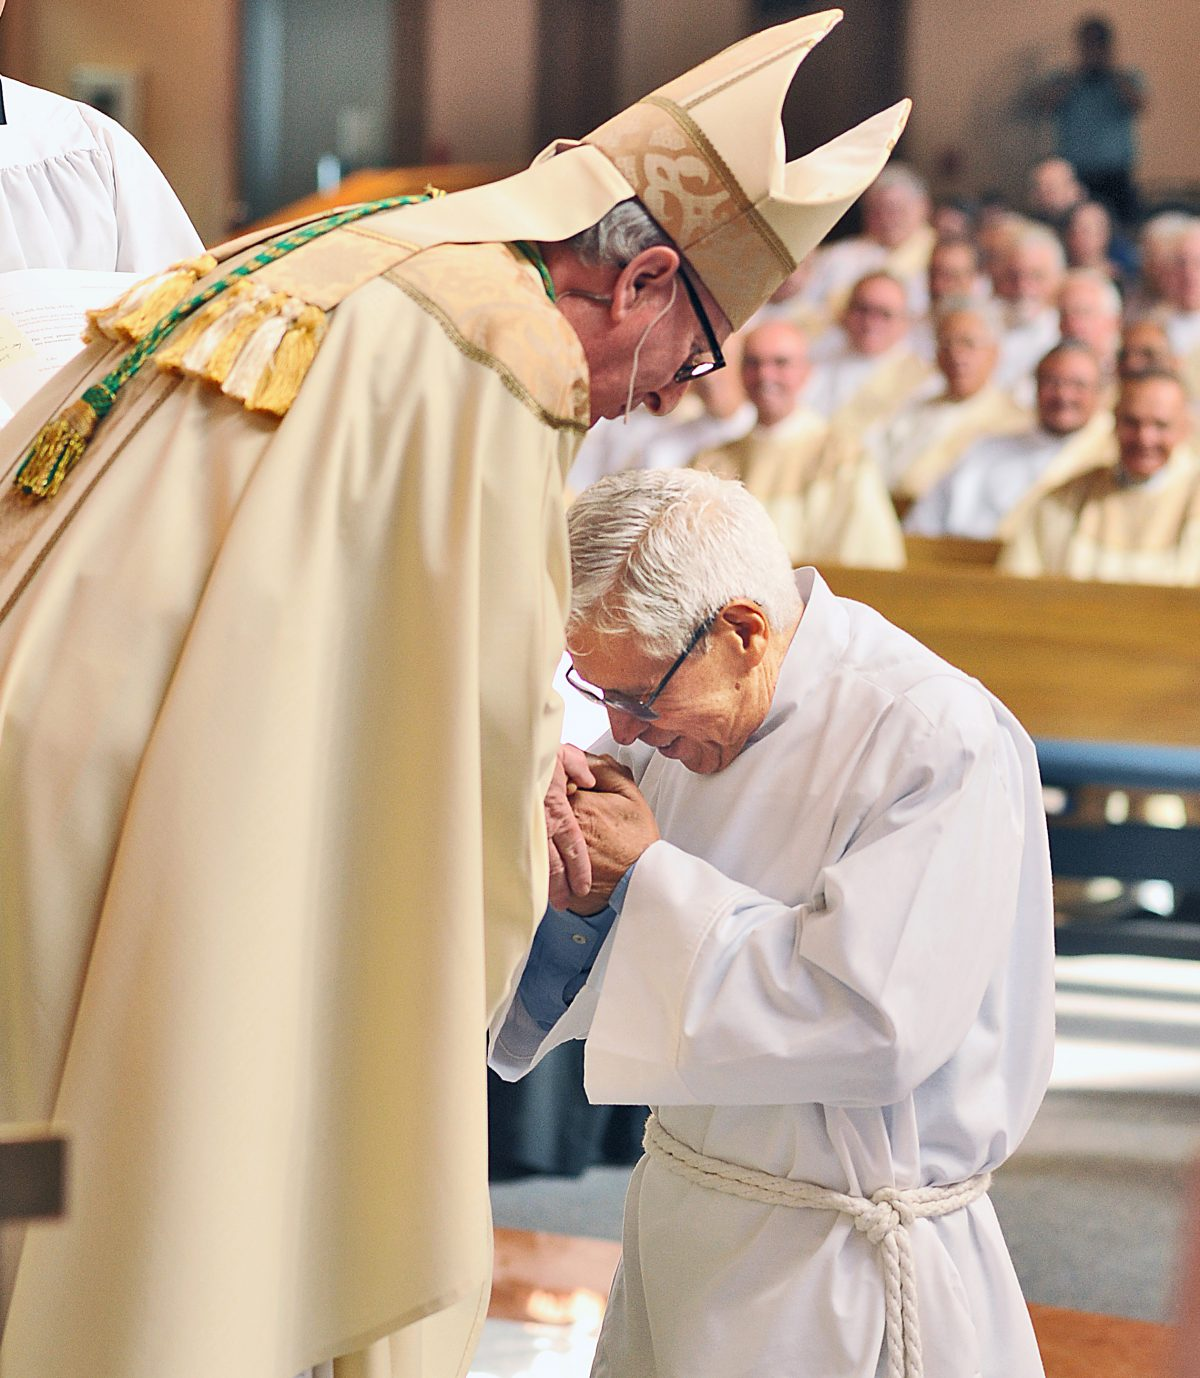 Newly ordained deacon battling stage four cancer